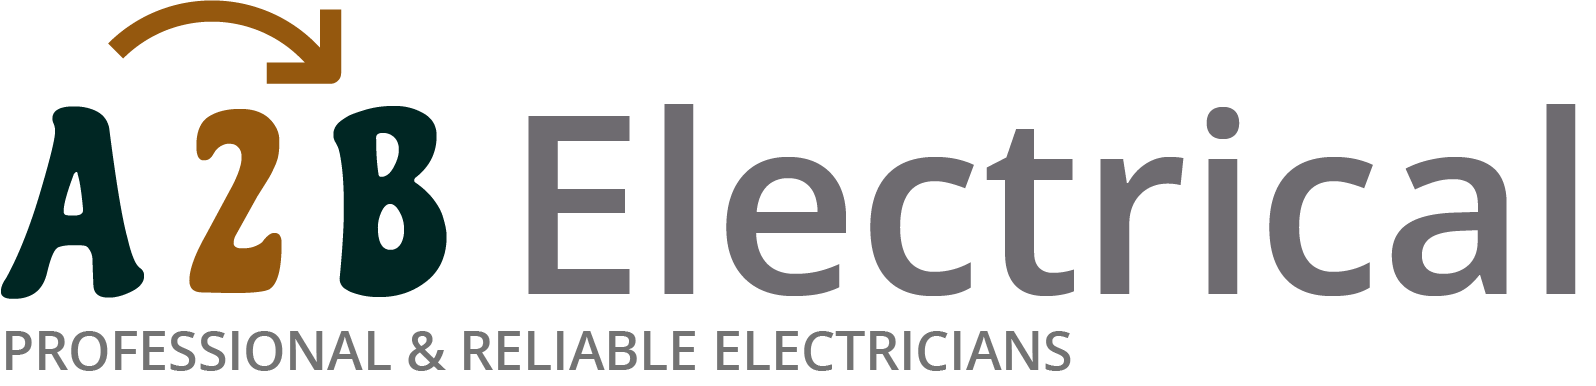 If you have electrical wiring problems in North Weald, we can provide an electrician to have a look for you.